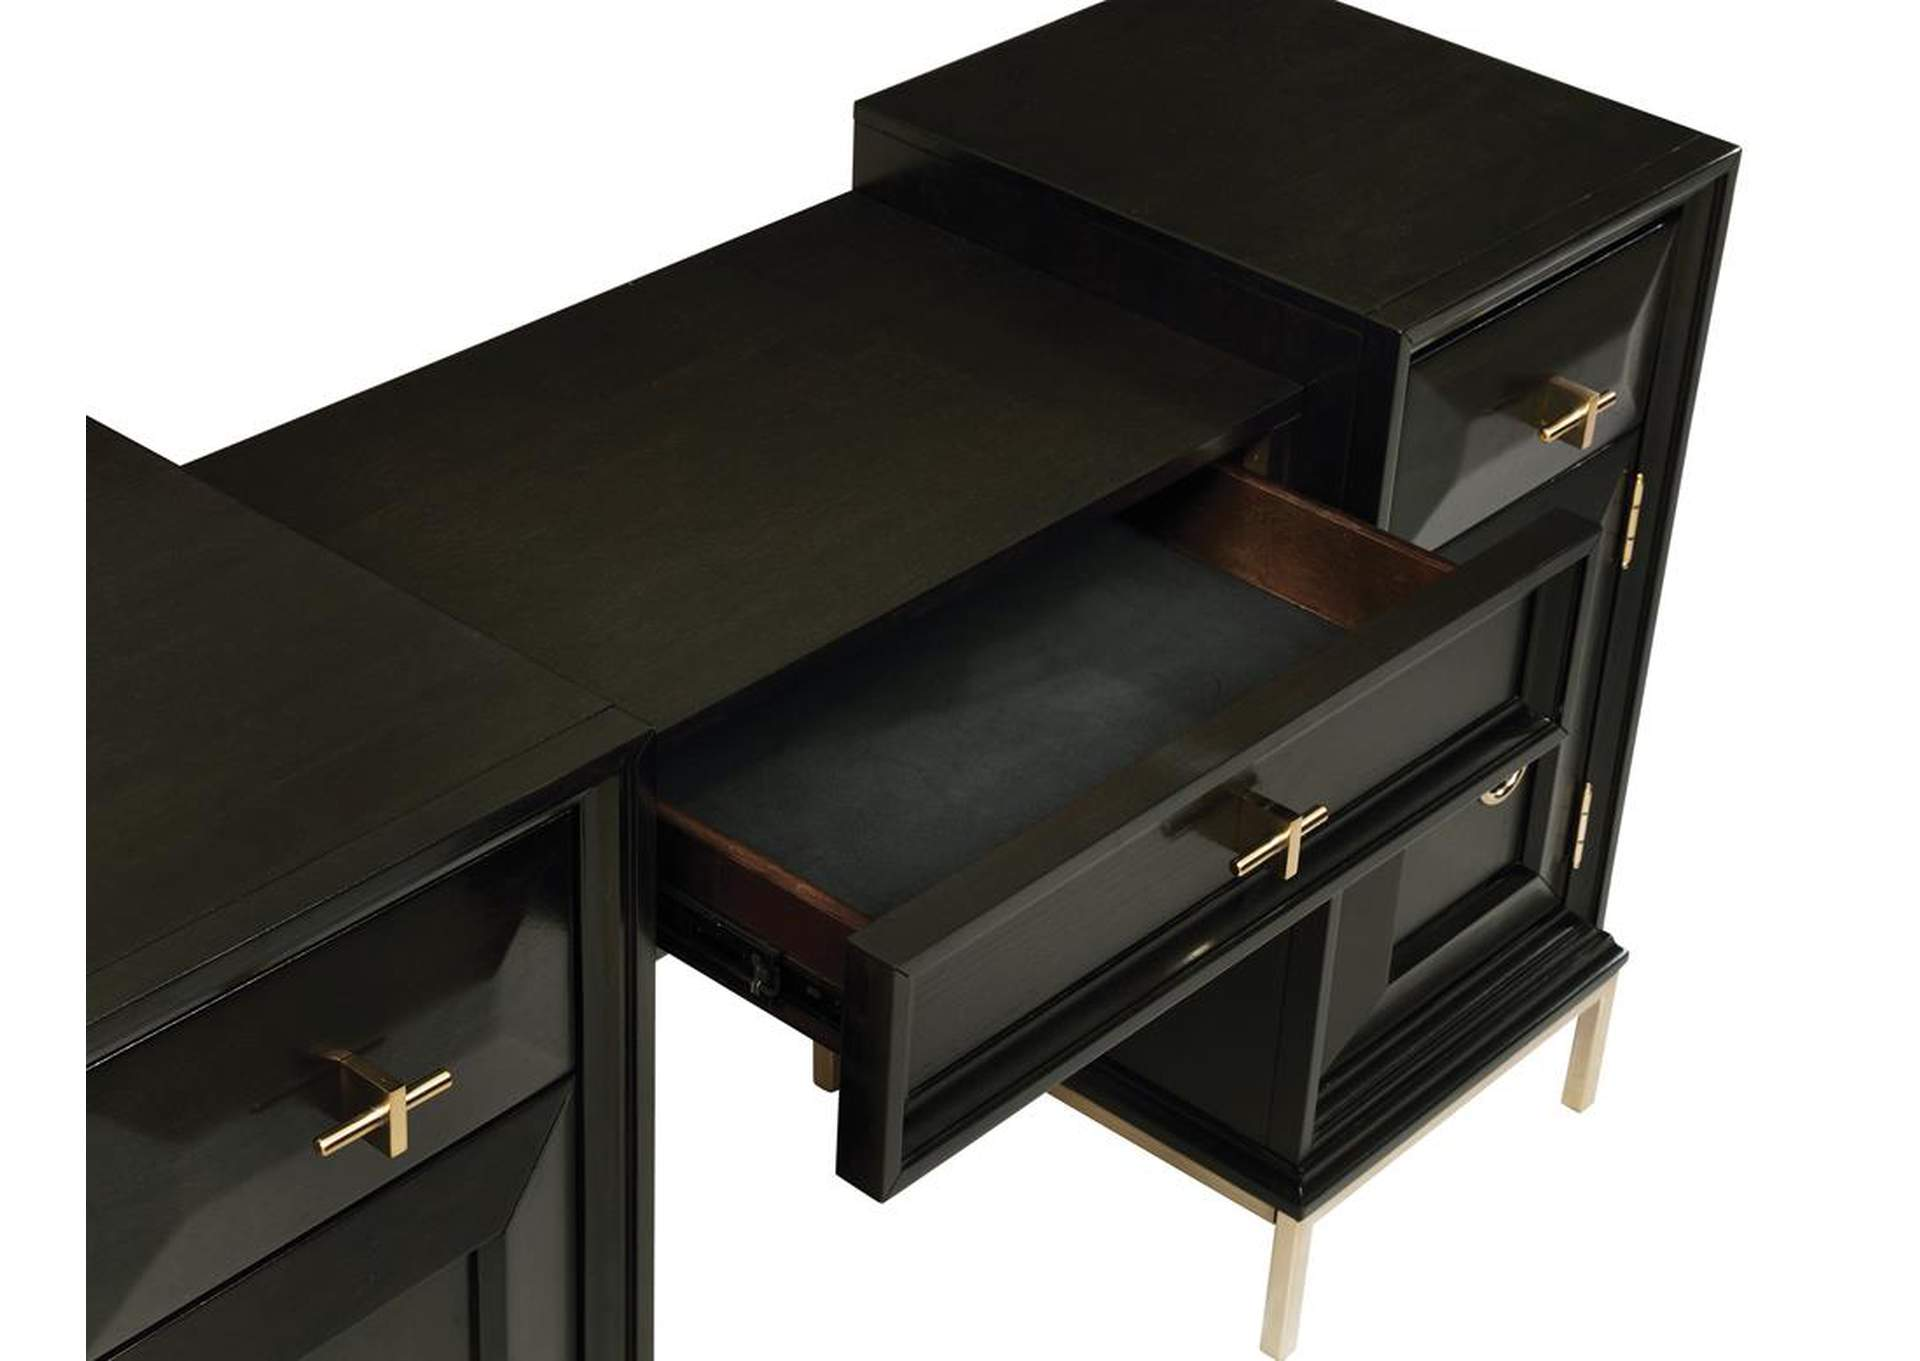 Rangoon Green Vanity Desk,Coaster Furniture